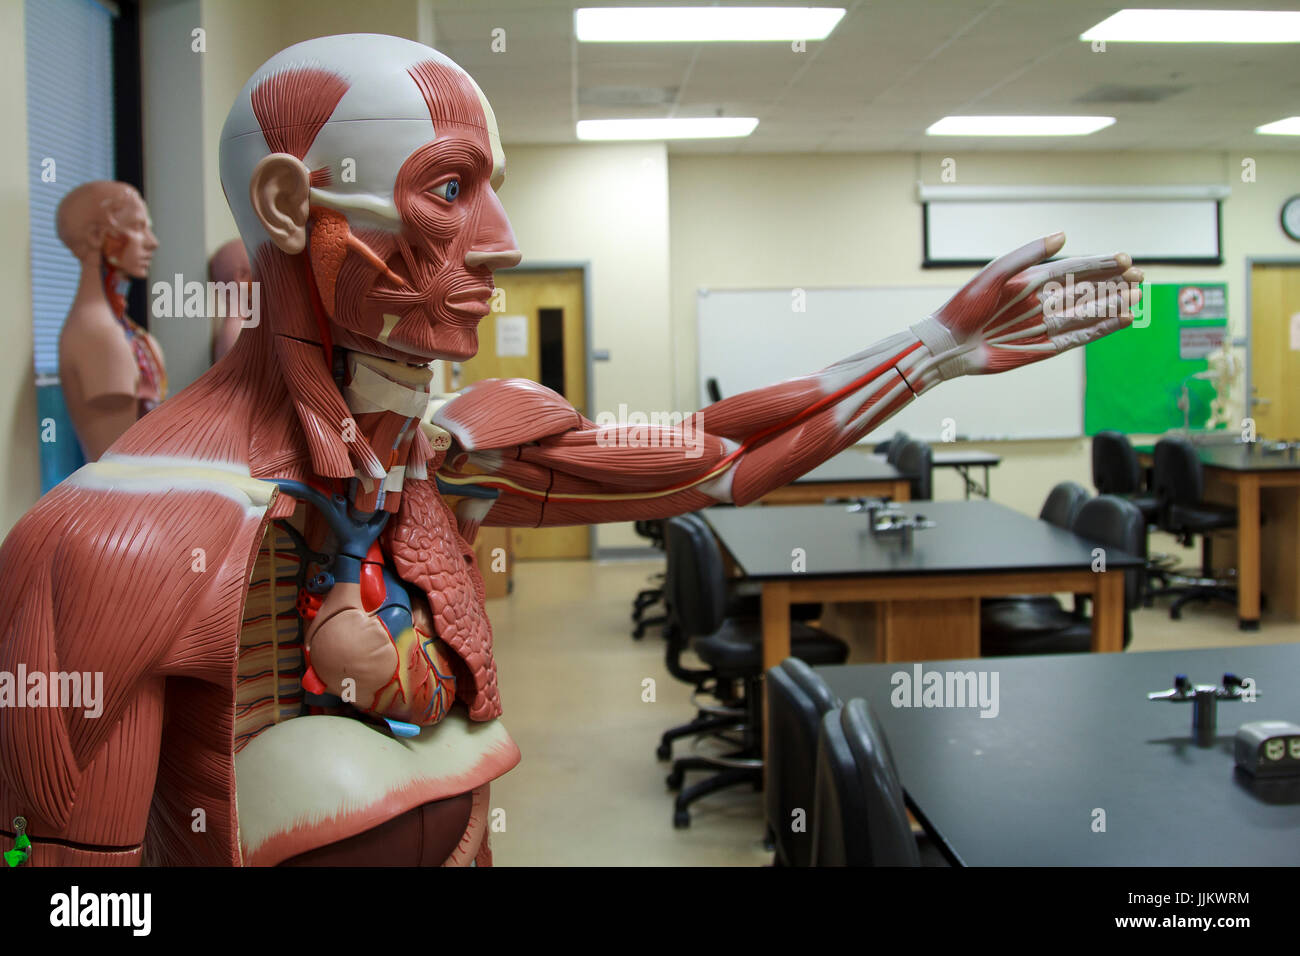 Anatomy Models in science medical school classroom - Stock Image